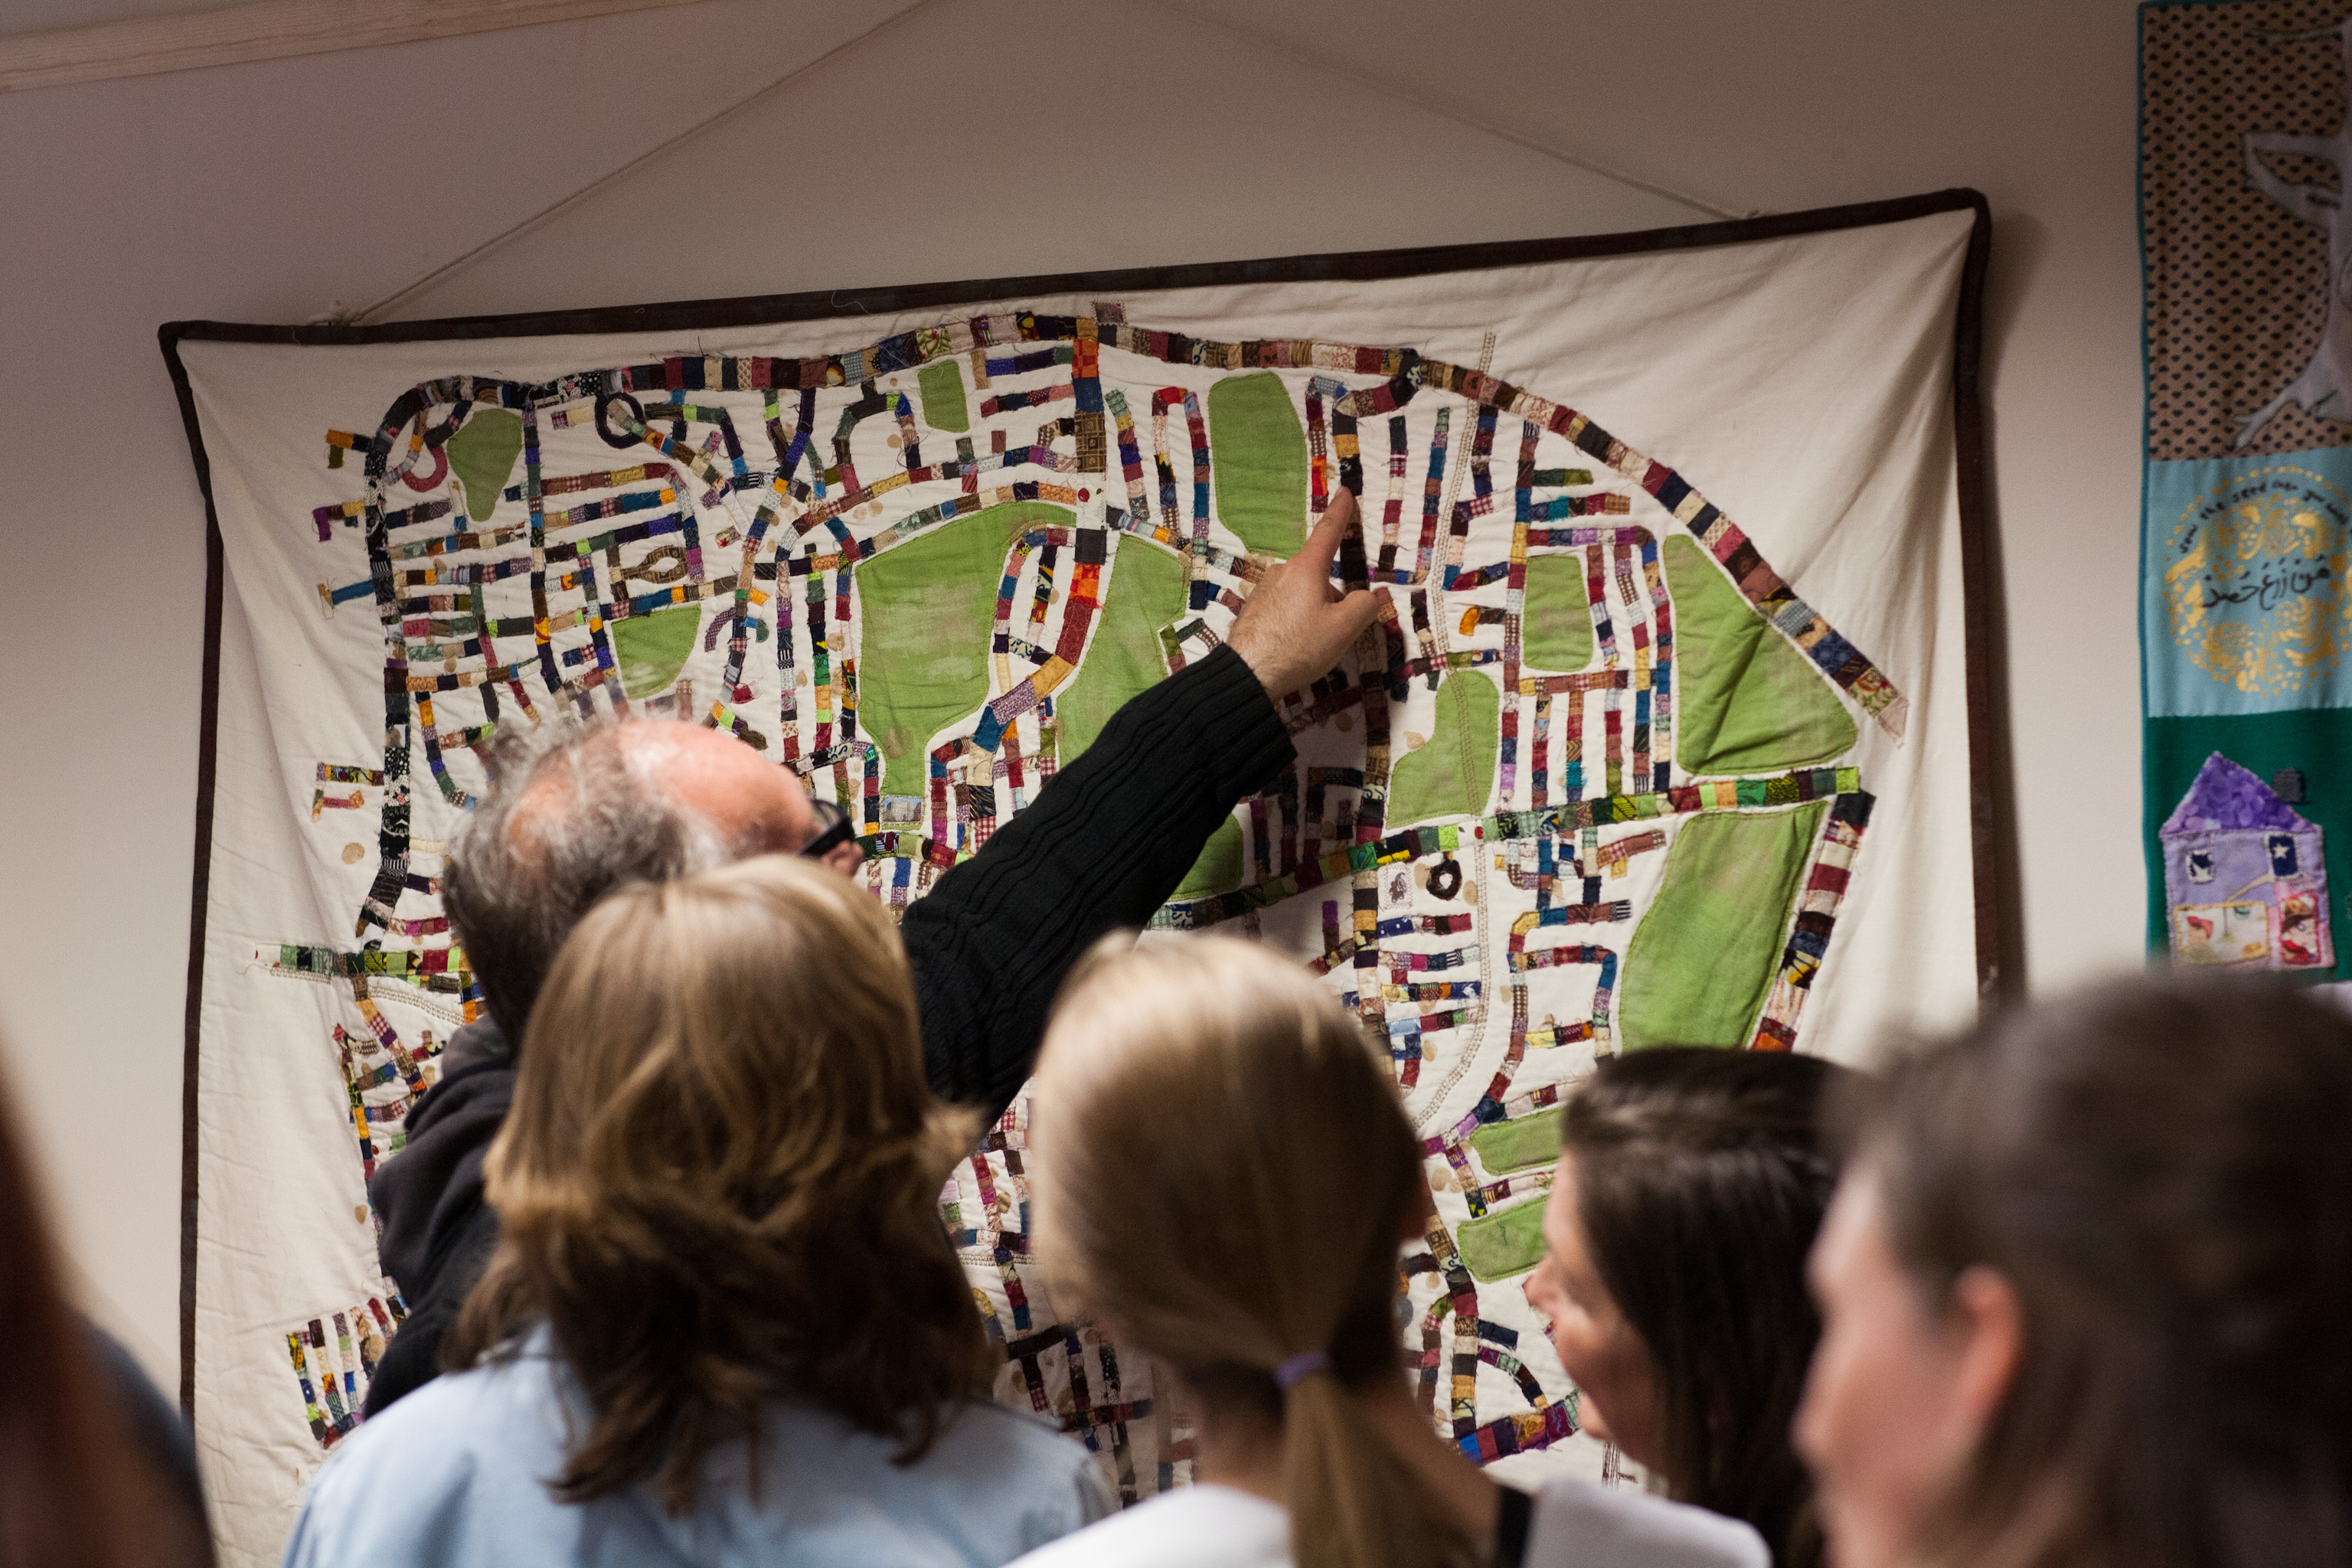 The Neighbourhood Quilt sparks conversations